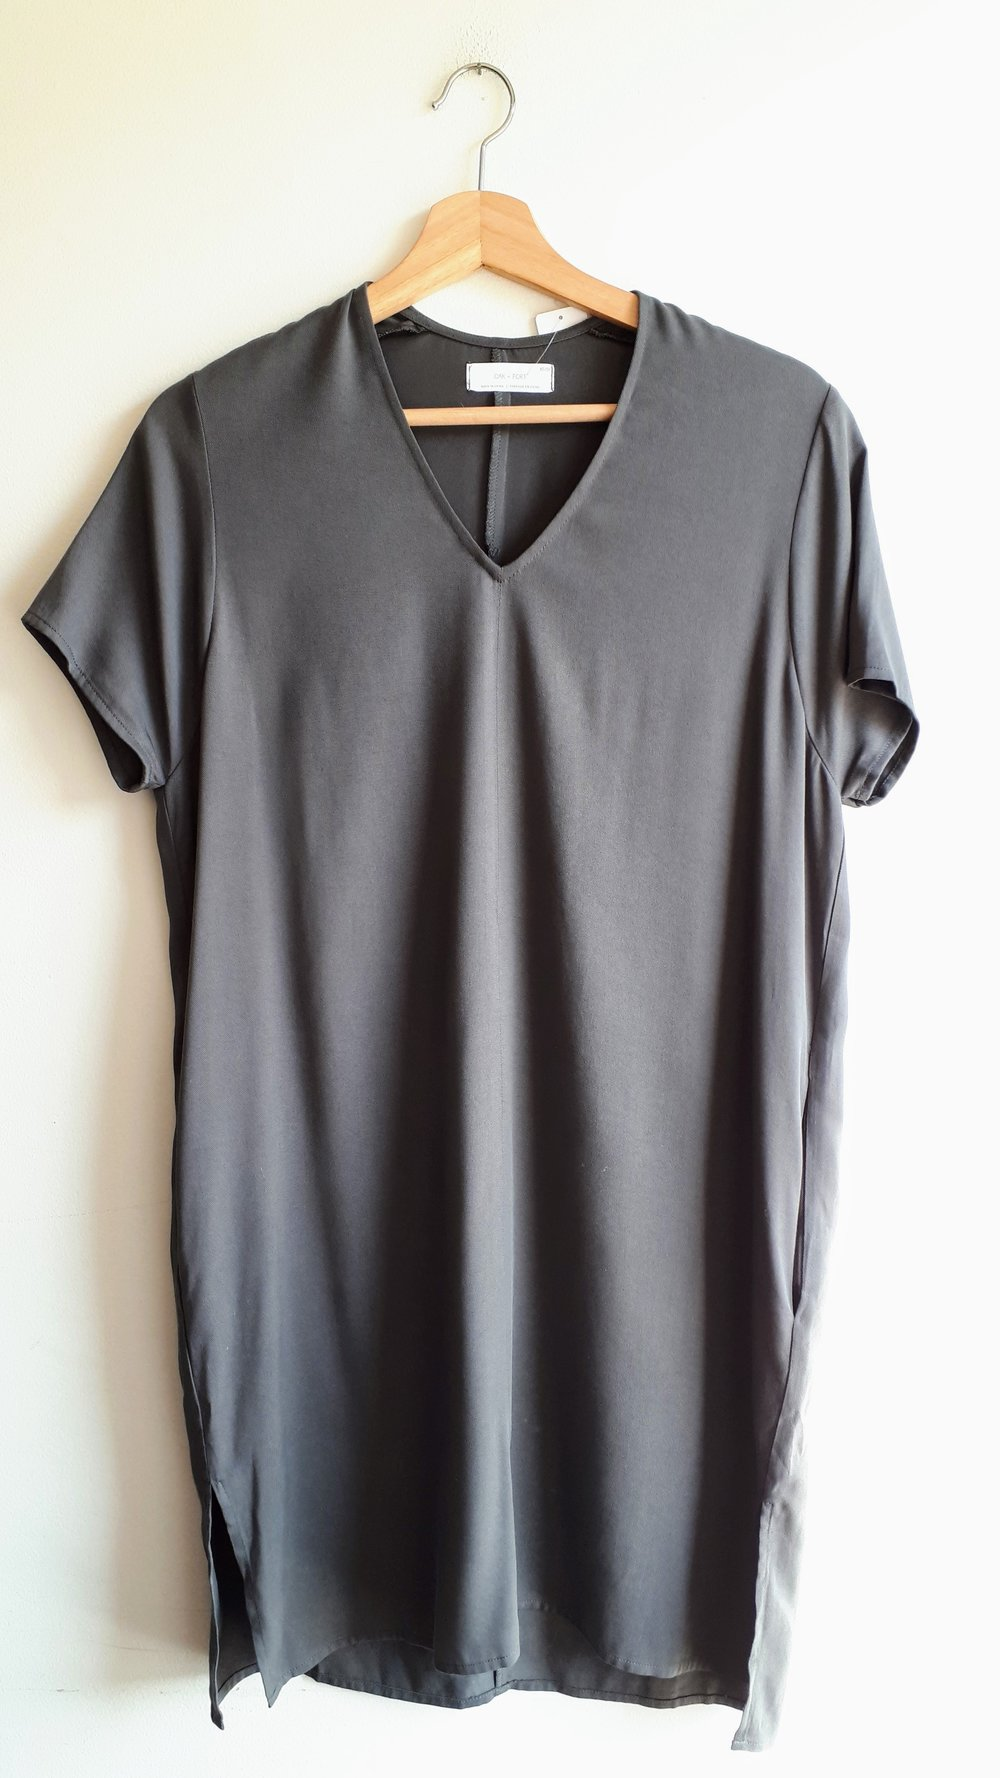 Oak+Fort tunic; Size S, $48